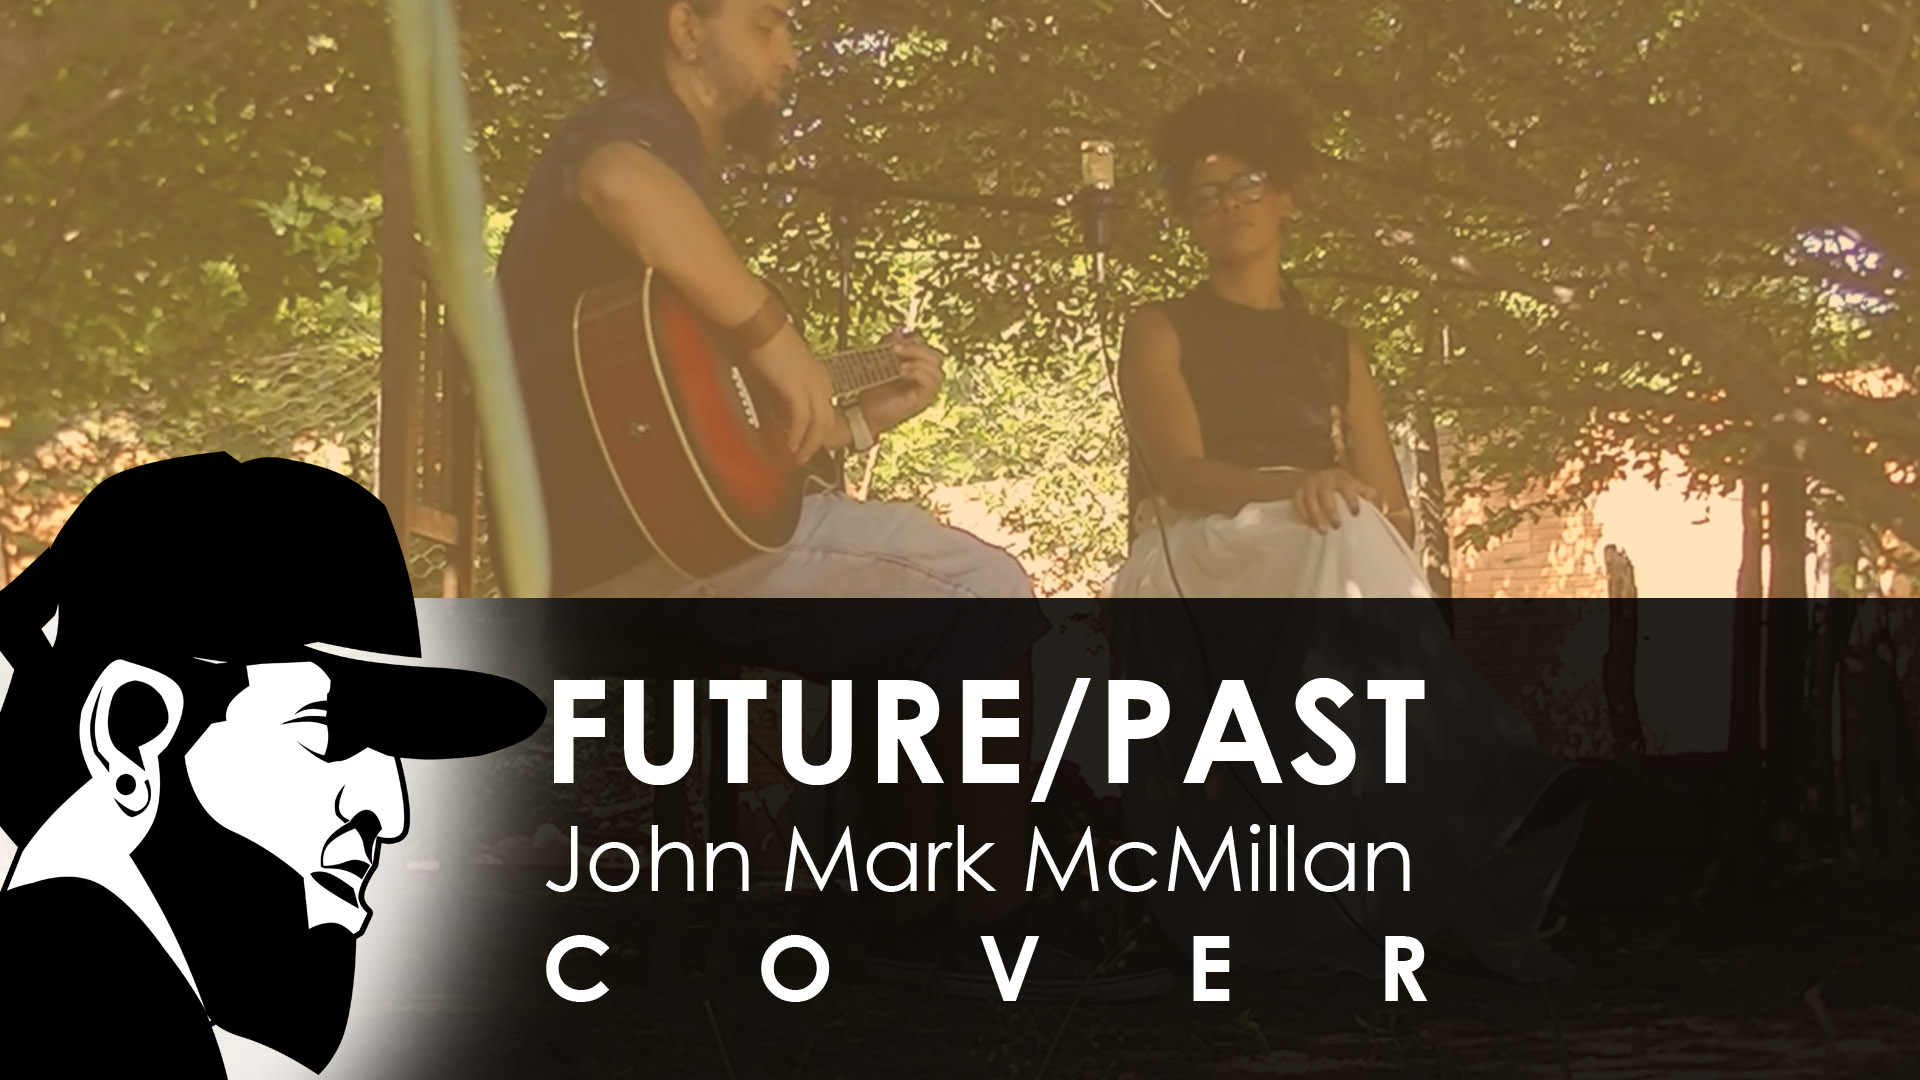 Future/Past – John Mark McMillan feat. Diva (Cover)